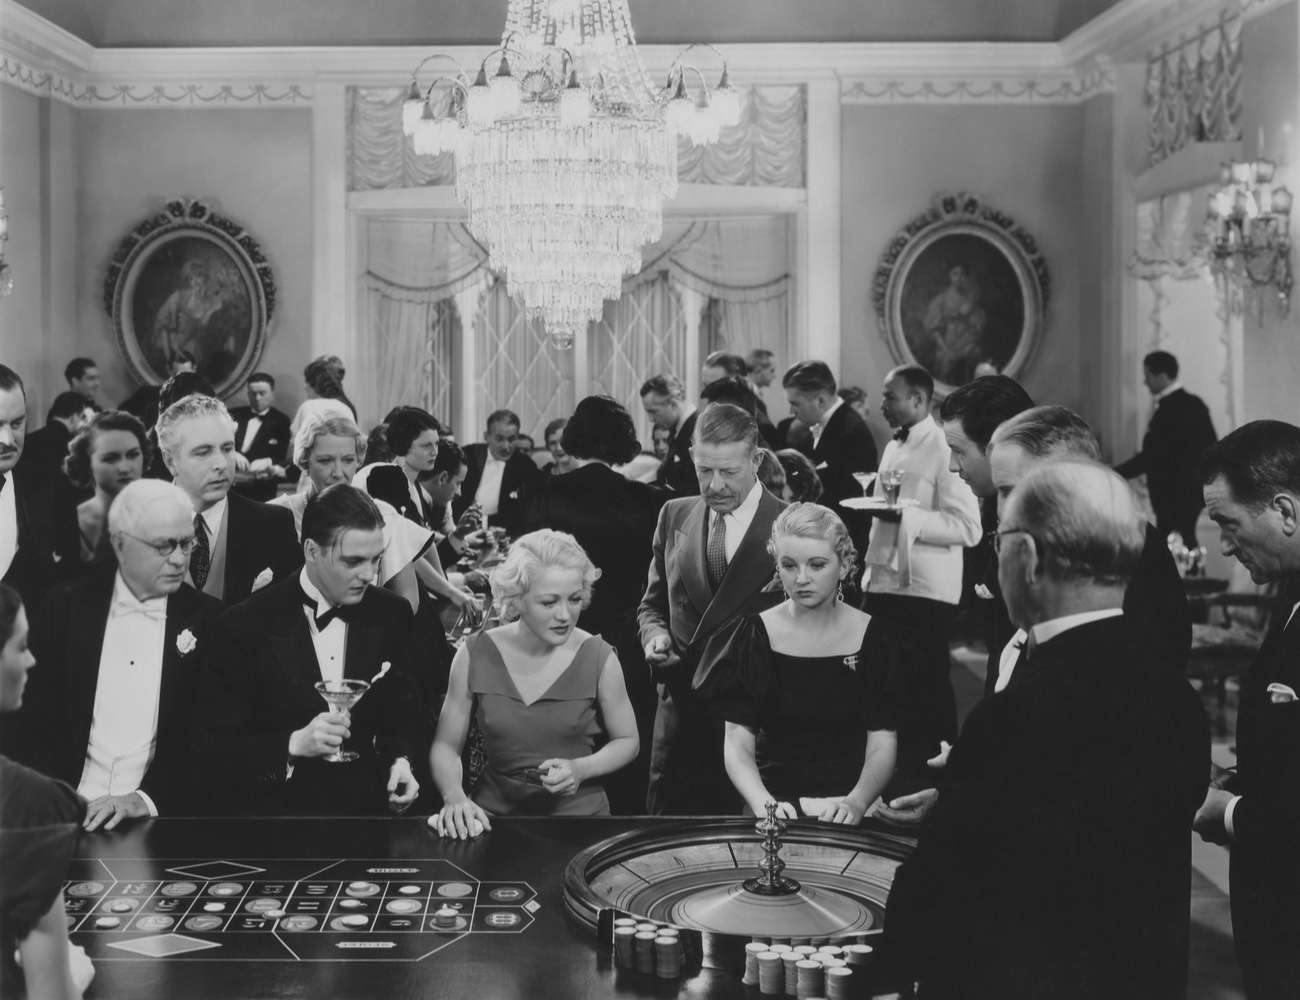 Black and white casino scene with people gathered around roulette wheel